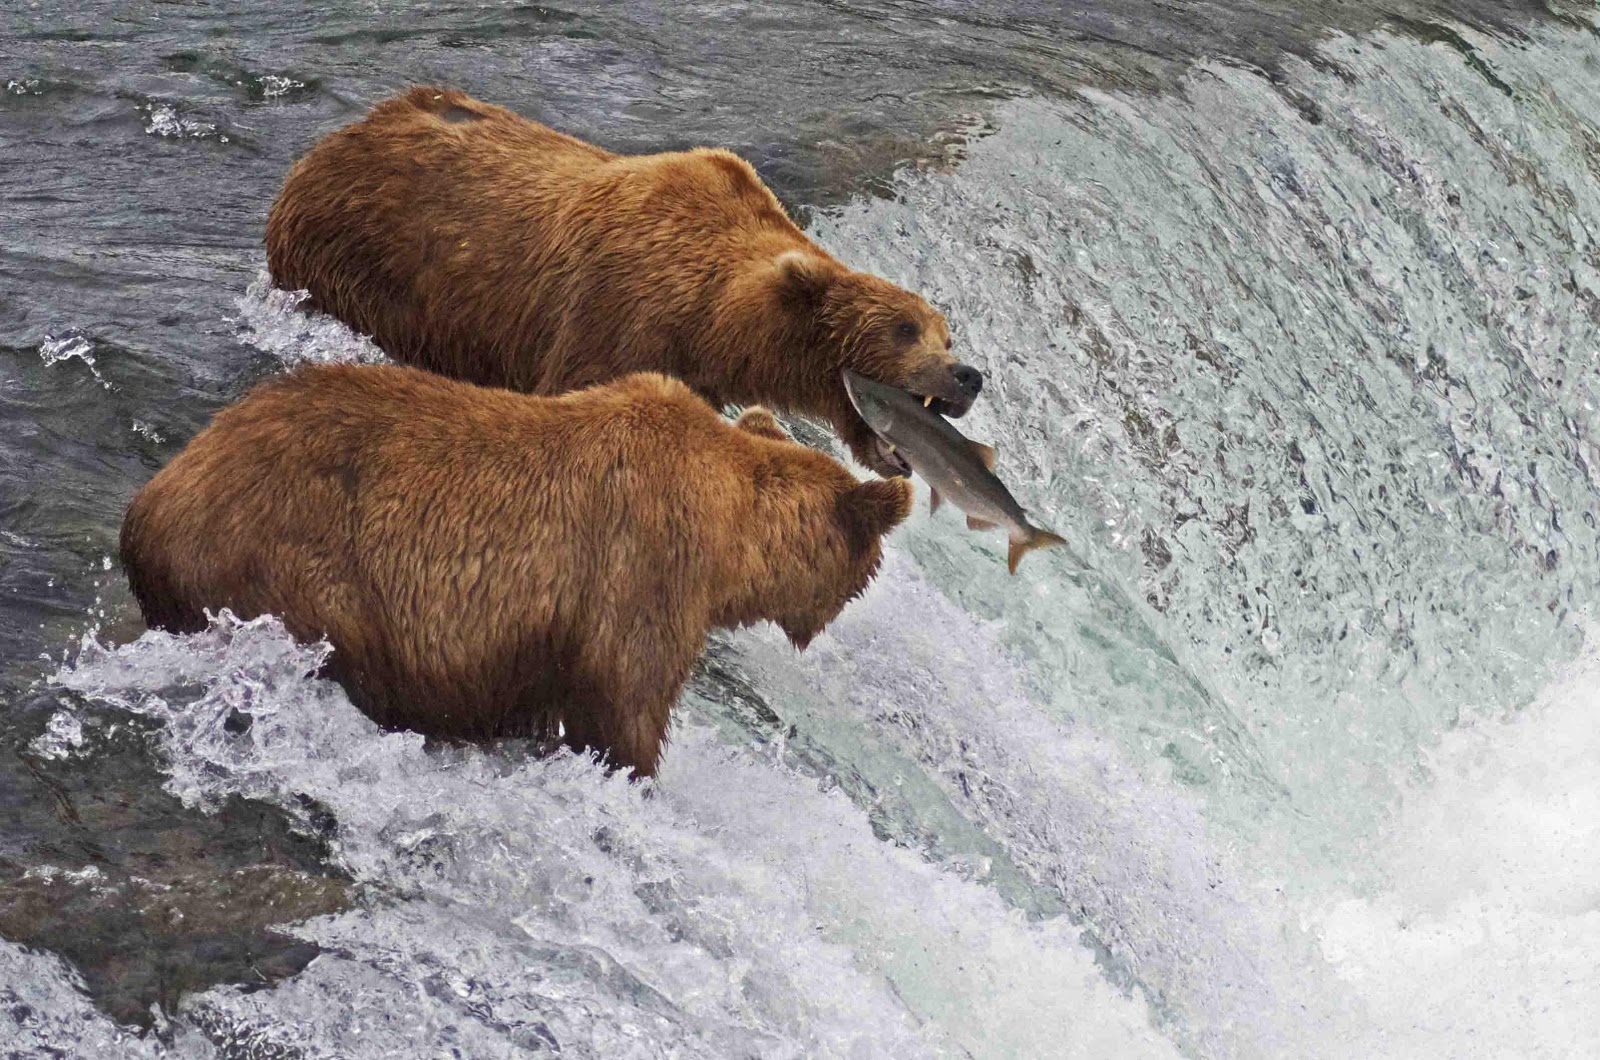 Phishers delight avoiding email scams infospectives for Bear catching fish